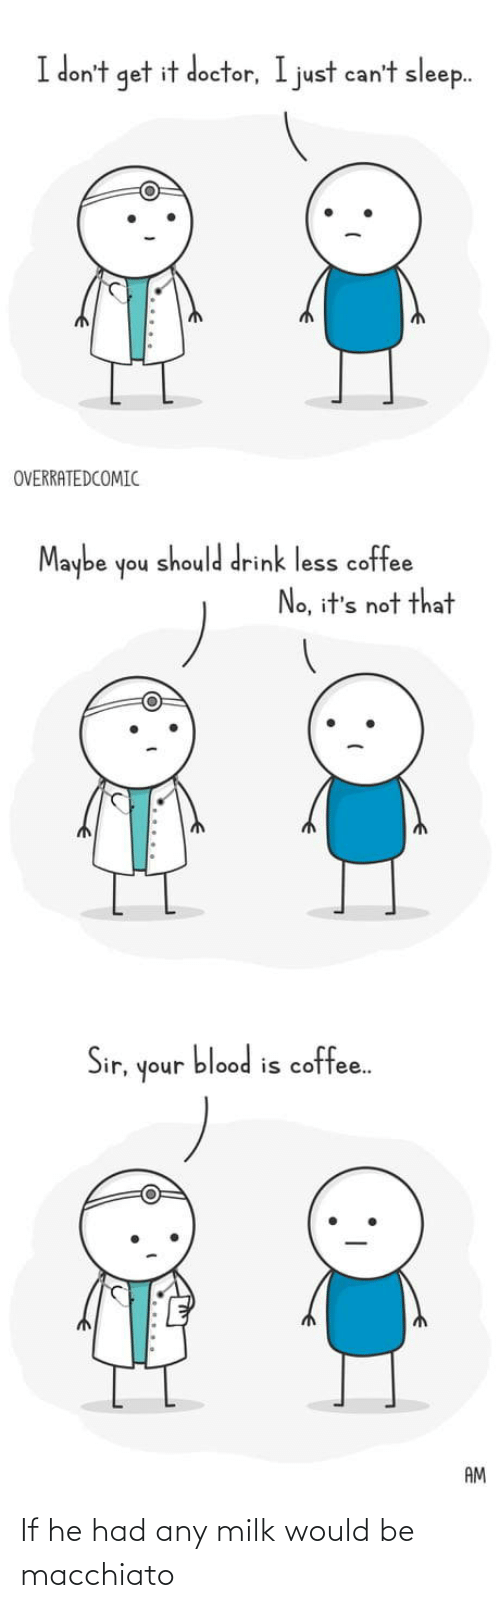 sir: I don't get it doctor, I just can't sleep.  OVERRATEDCOMIC  Maybe  should drink less coffee  noh  No, it's not that  blood is coffee.  Sir,  unoh  AM If he had any milk would be macchiato